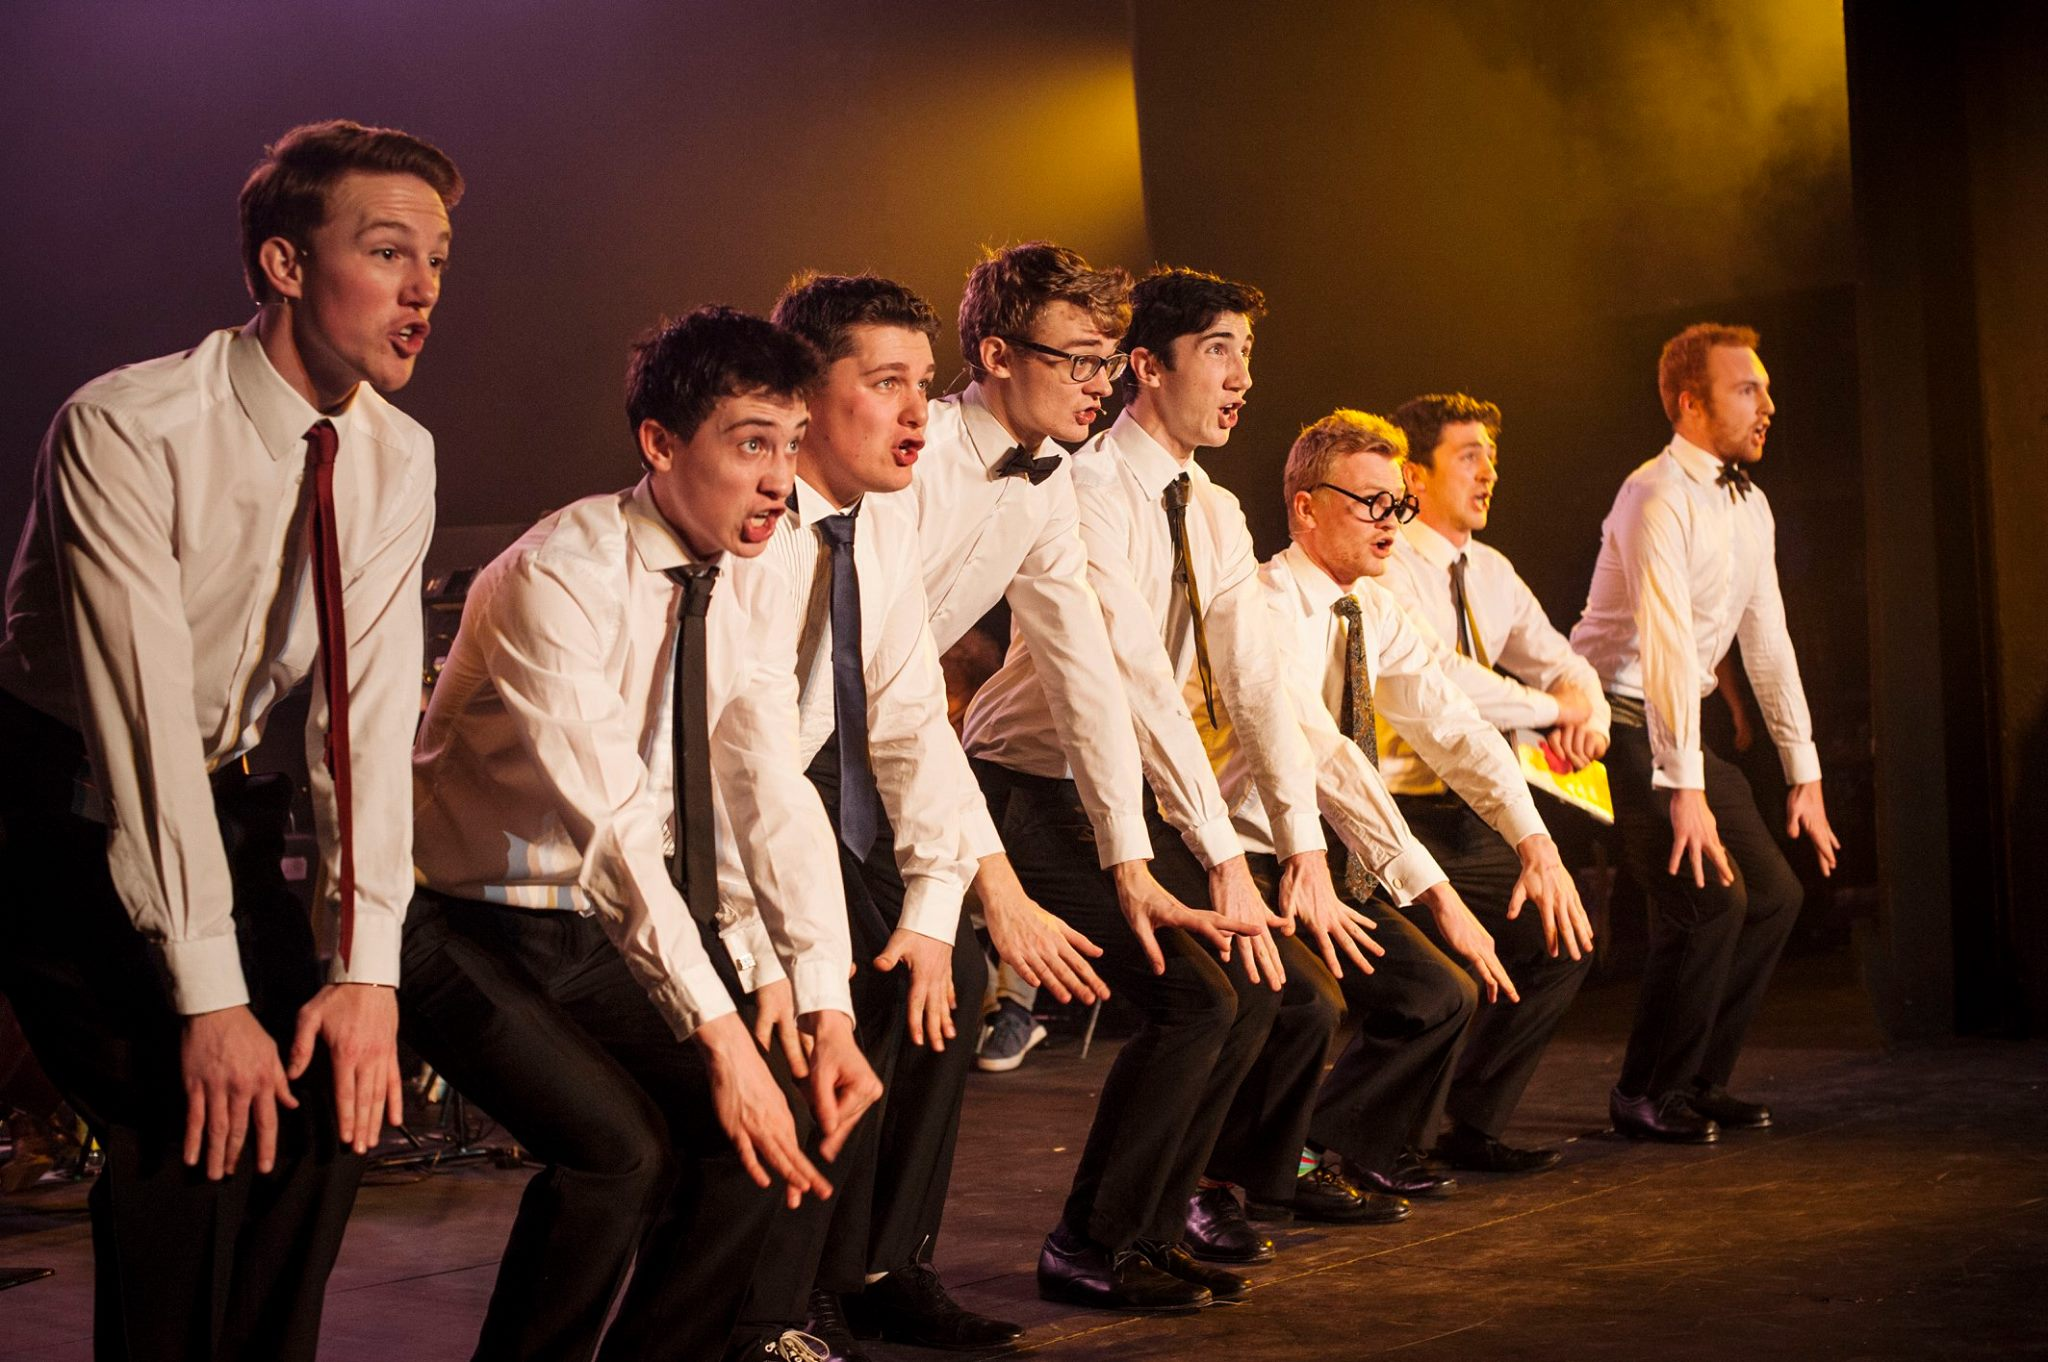 The male chorus consistently put out energetic and engaging performances.